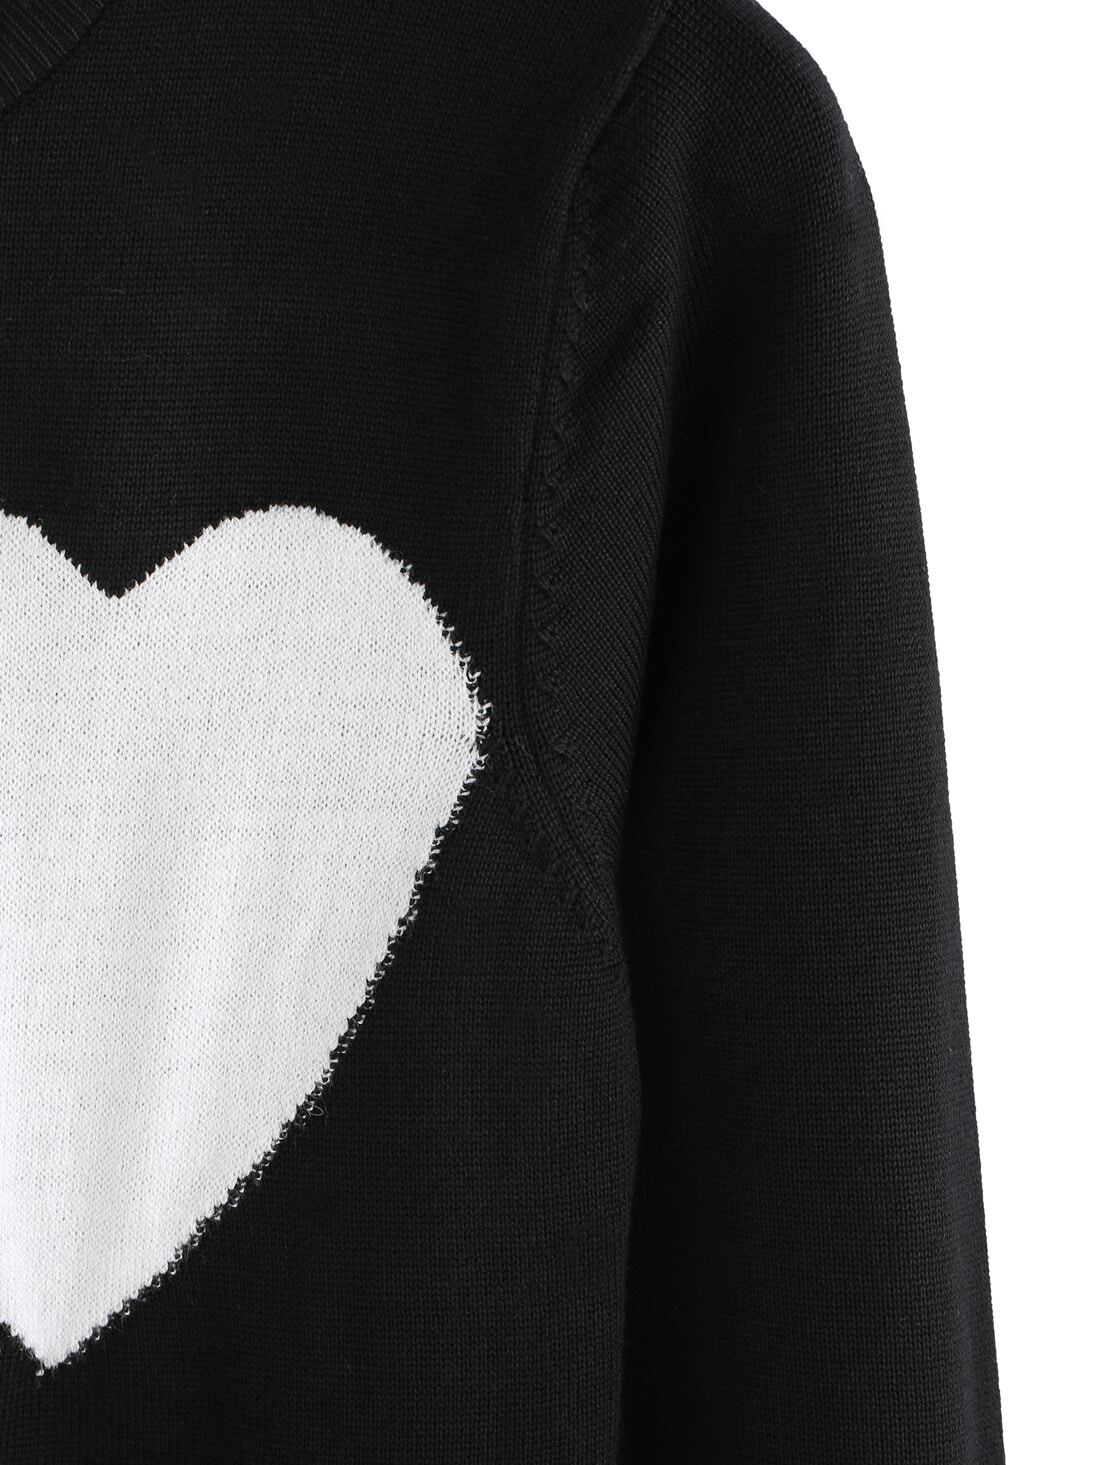 Black Round Neck Heart Pattern Knit Sweater -SheIn(Sheinside)